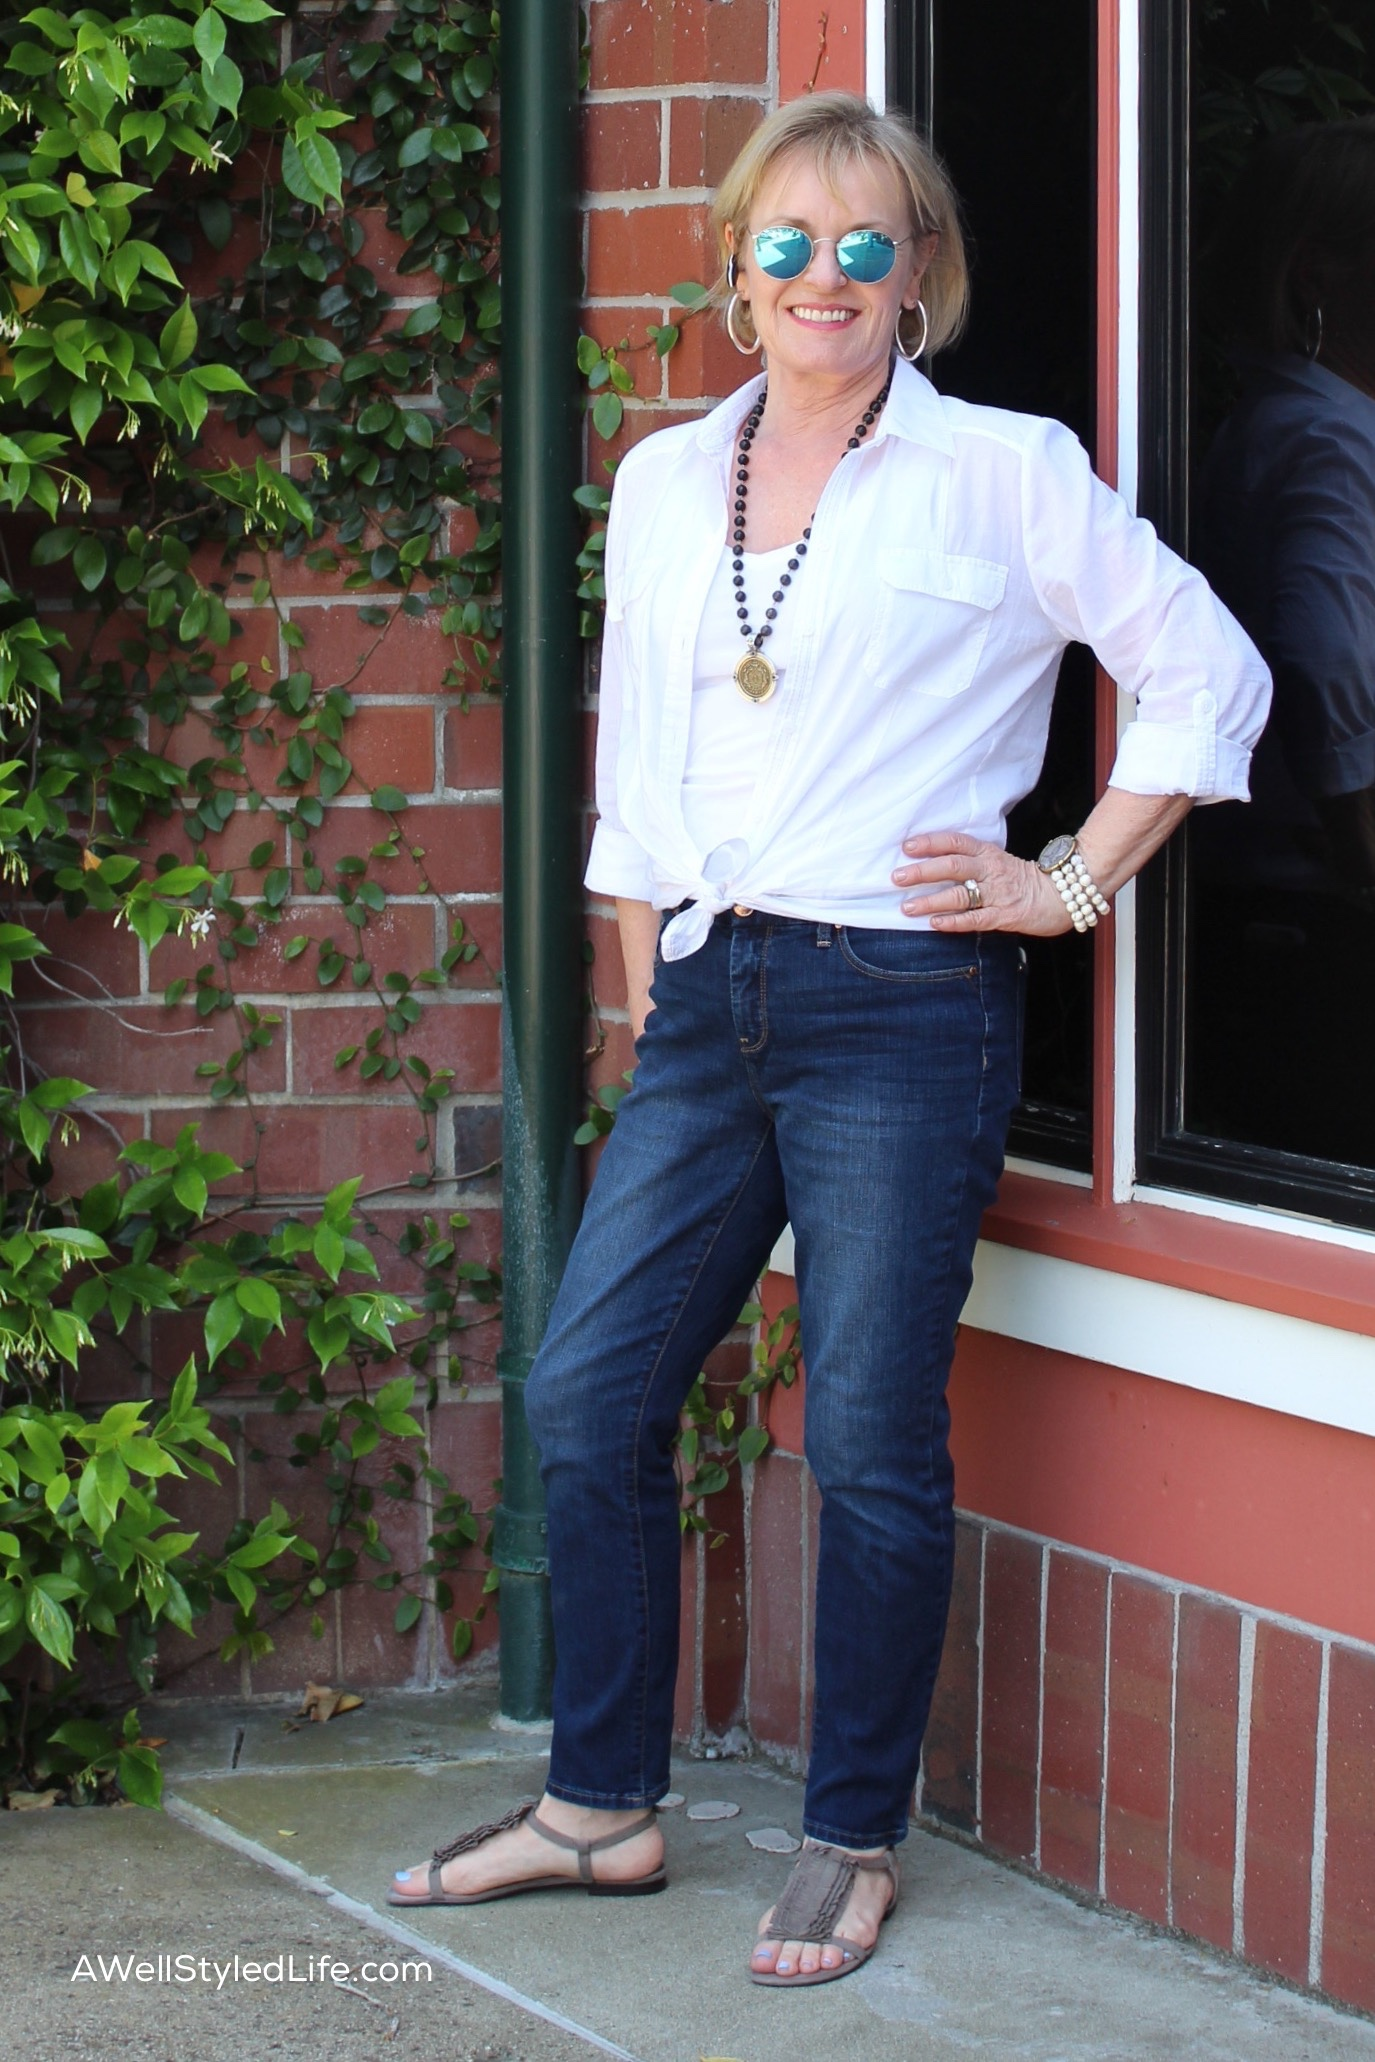 White Blouse styled by Jennifer Connolly - AWellStyledLife.com